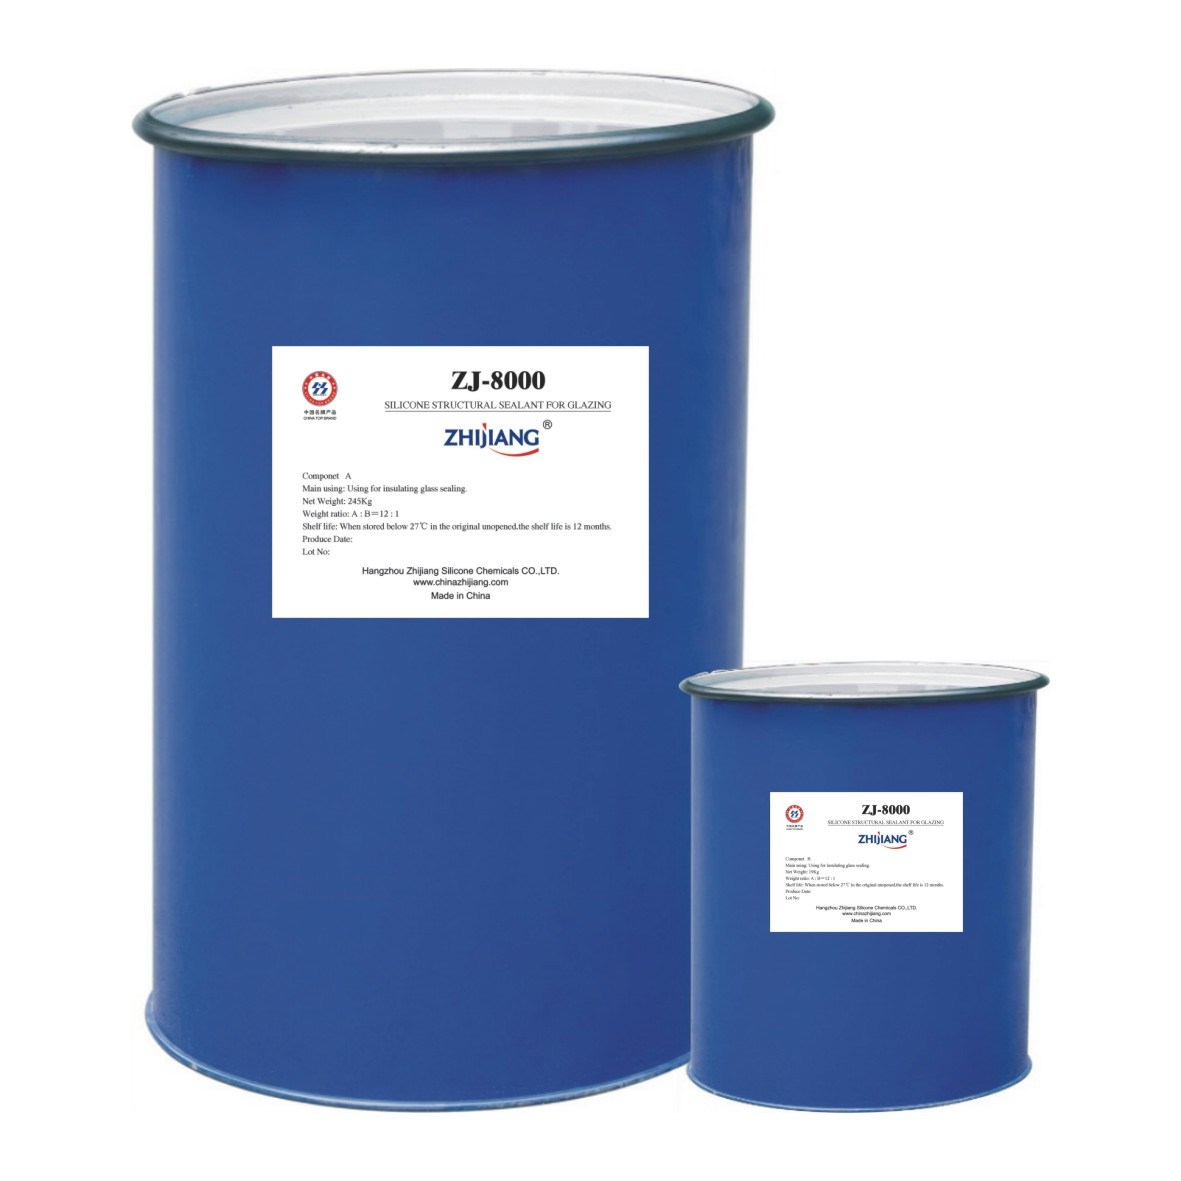 Structural Glazing Product : China two parts silicone structural sealant for glazing